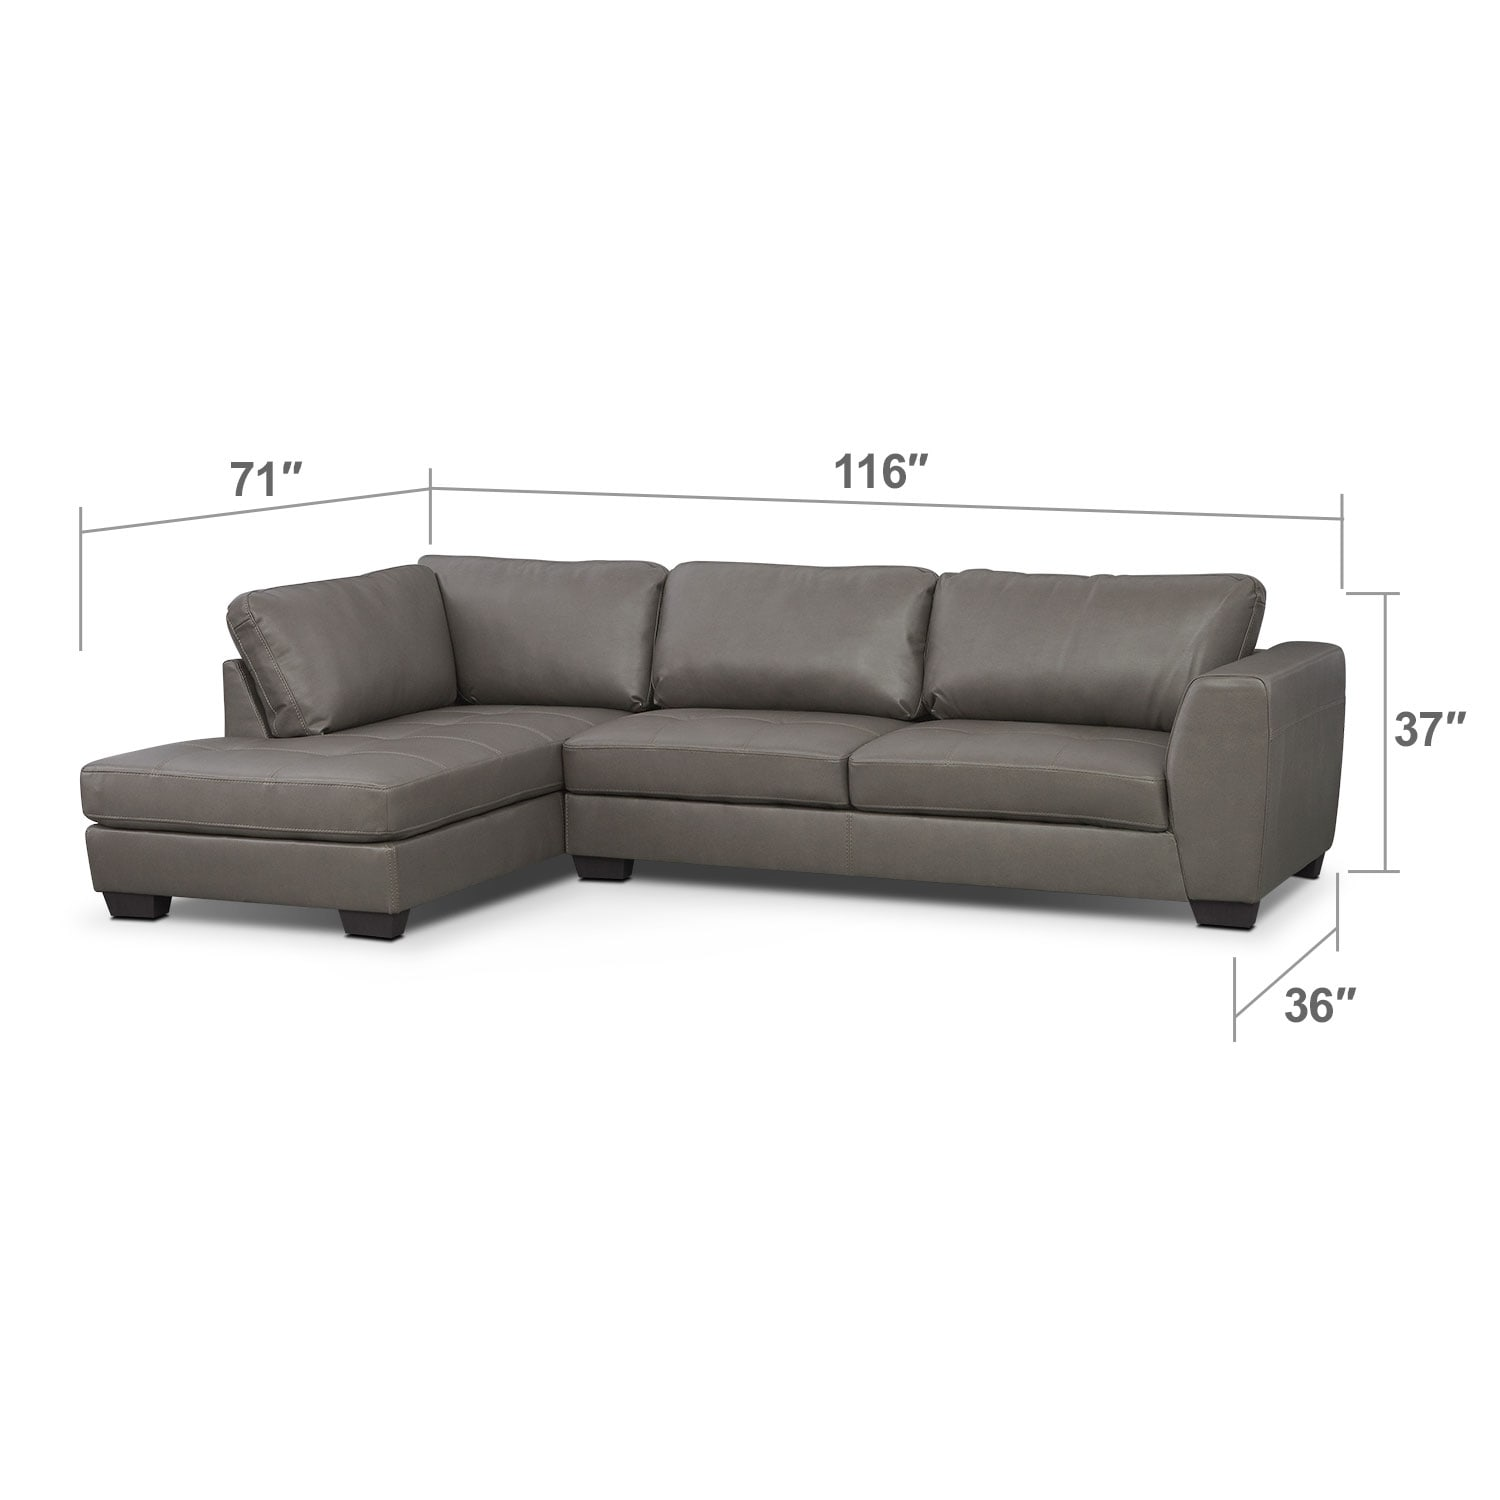 Living Room Furniture - Lyon Gray 2 Pc. Sectional